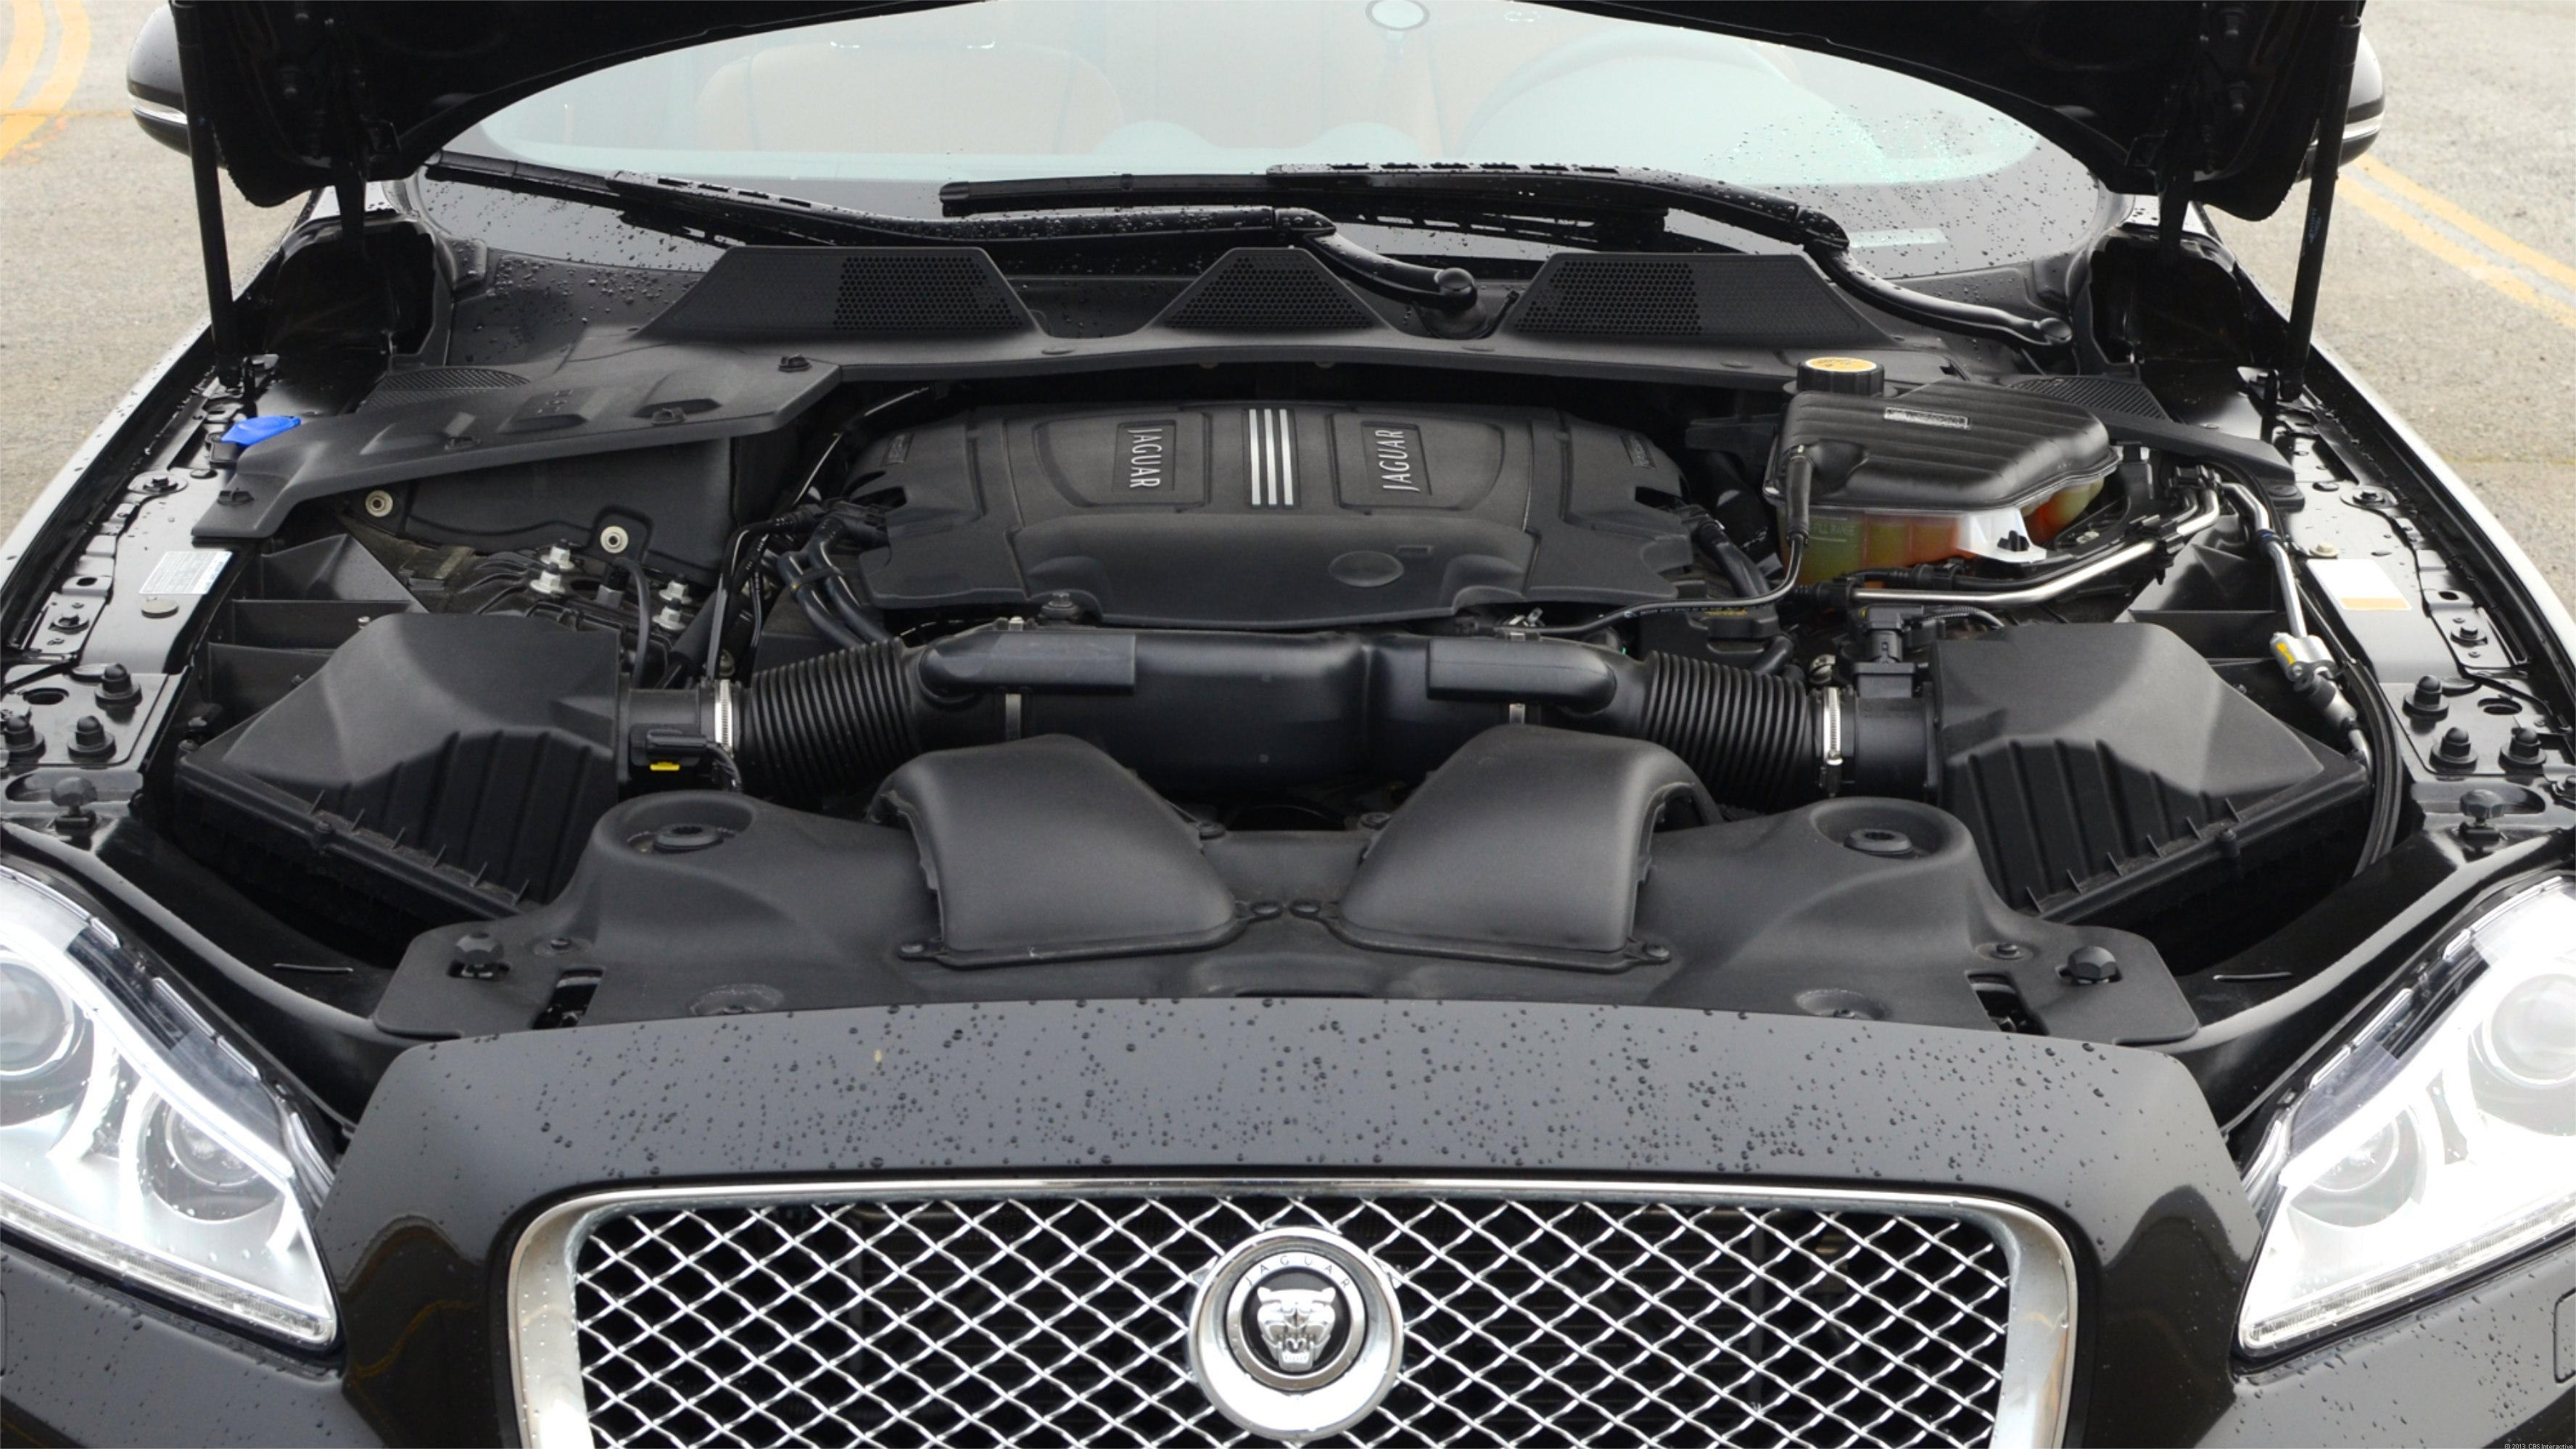 Jaguar XJ engine bay